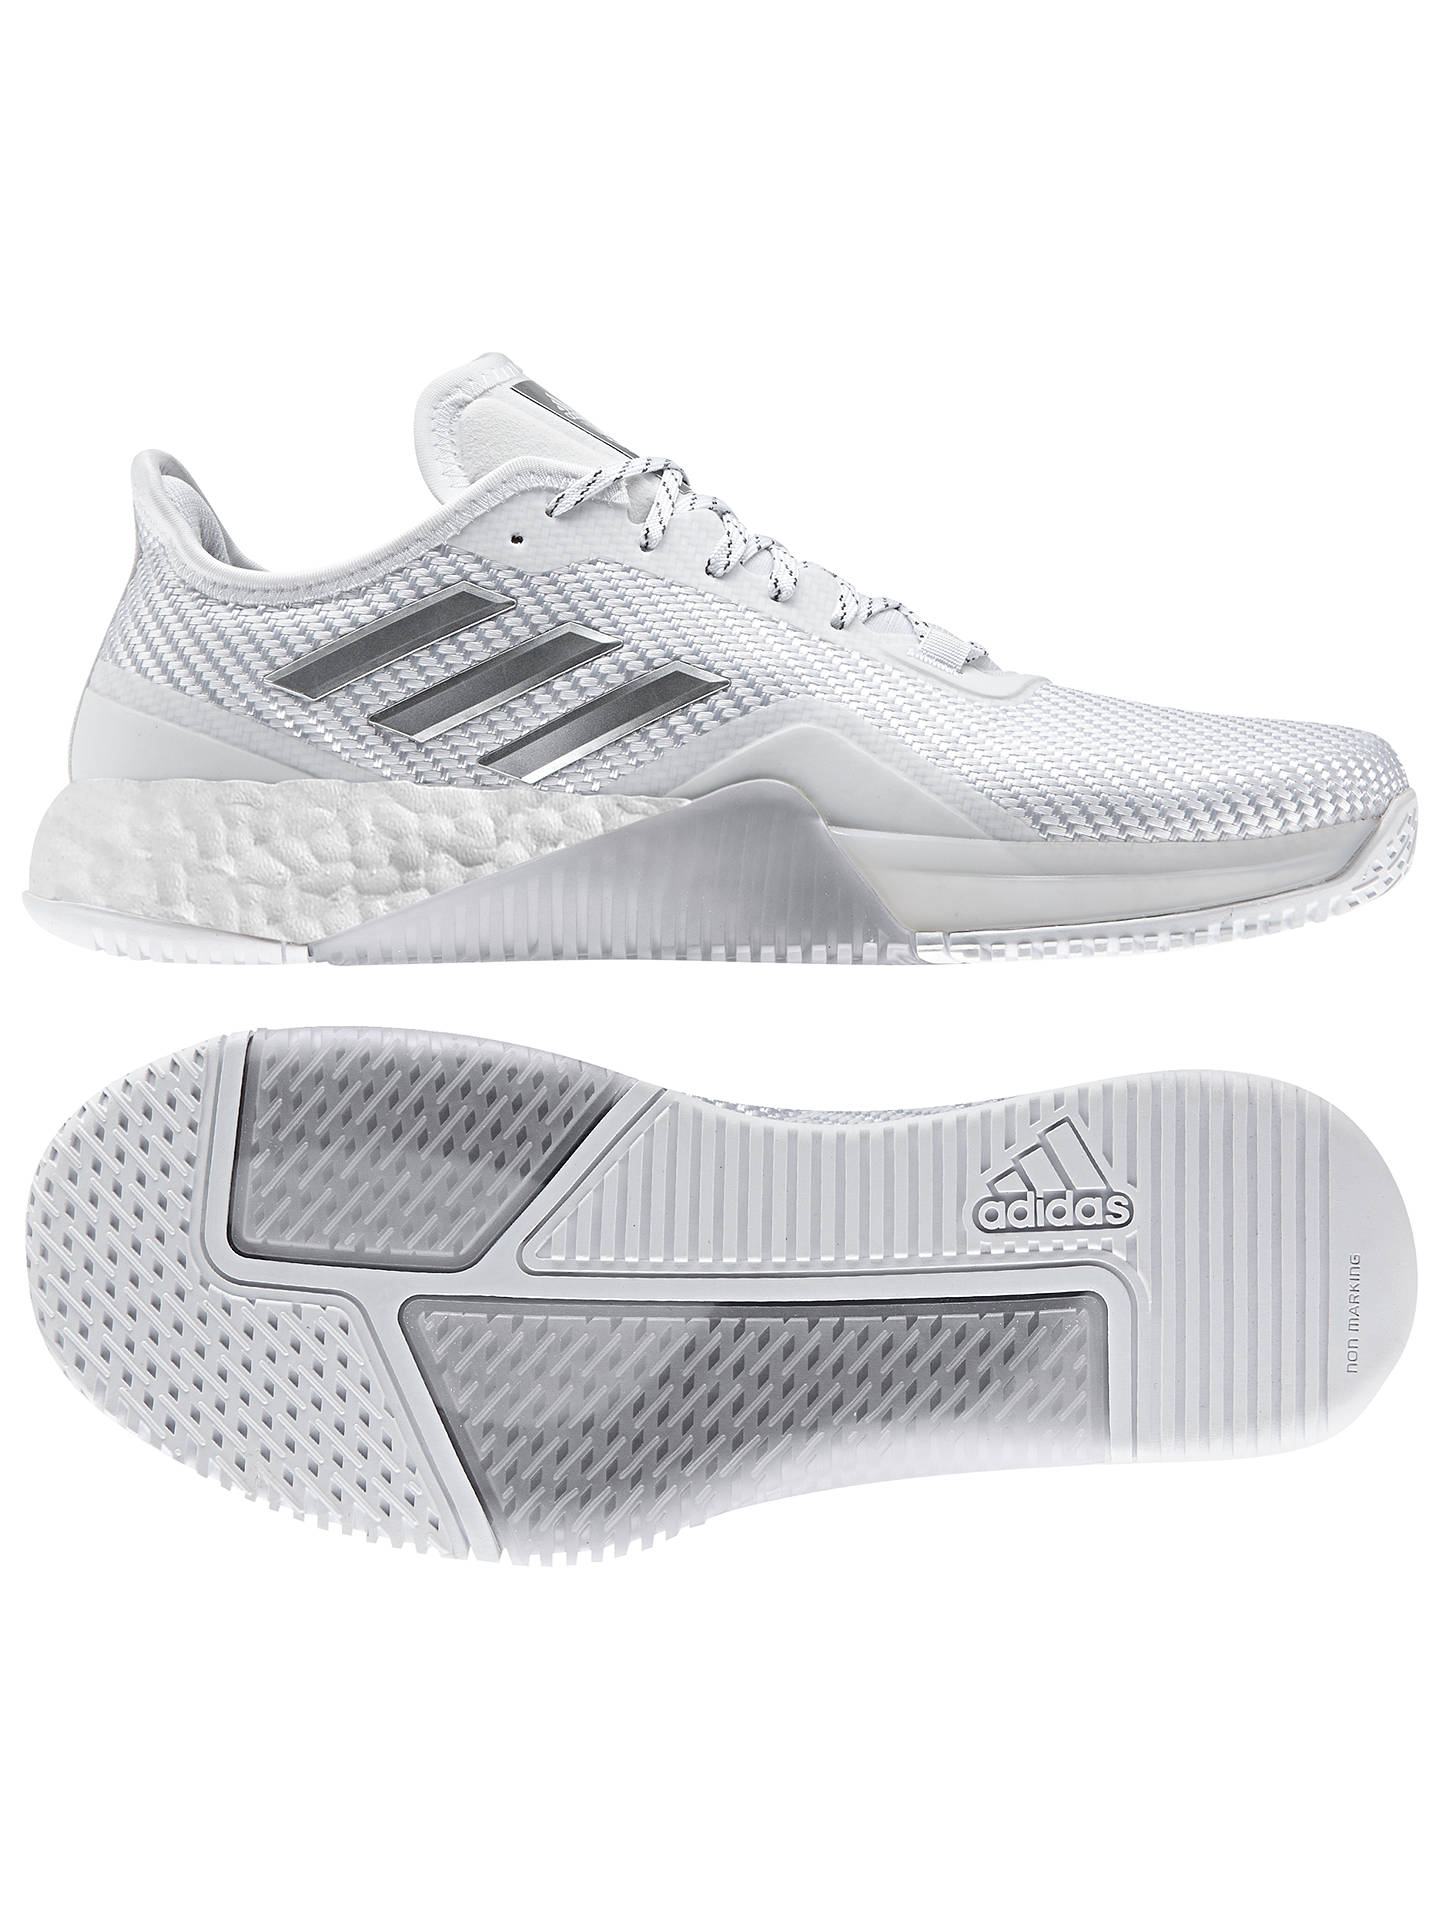 adidas crazytrain boost elite